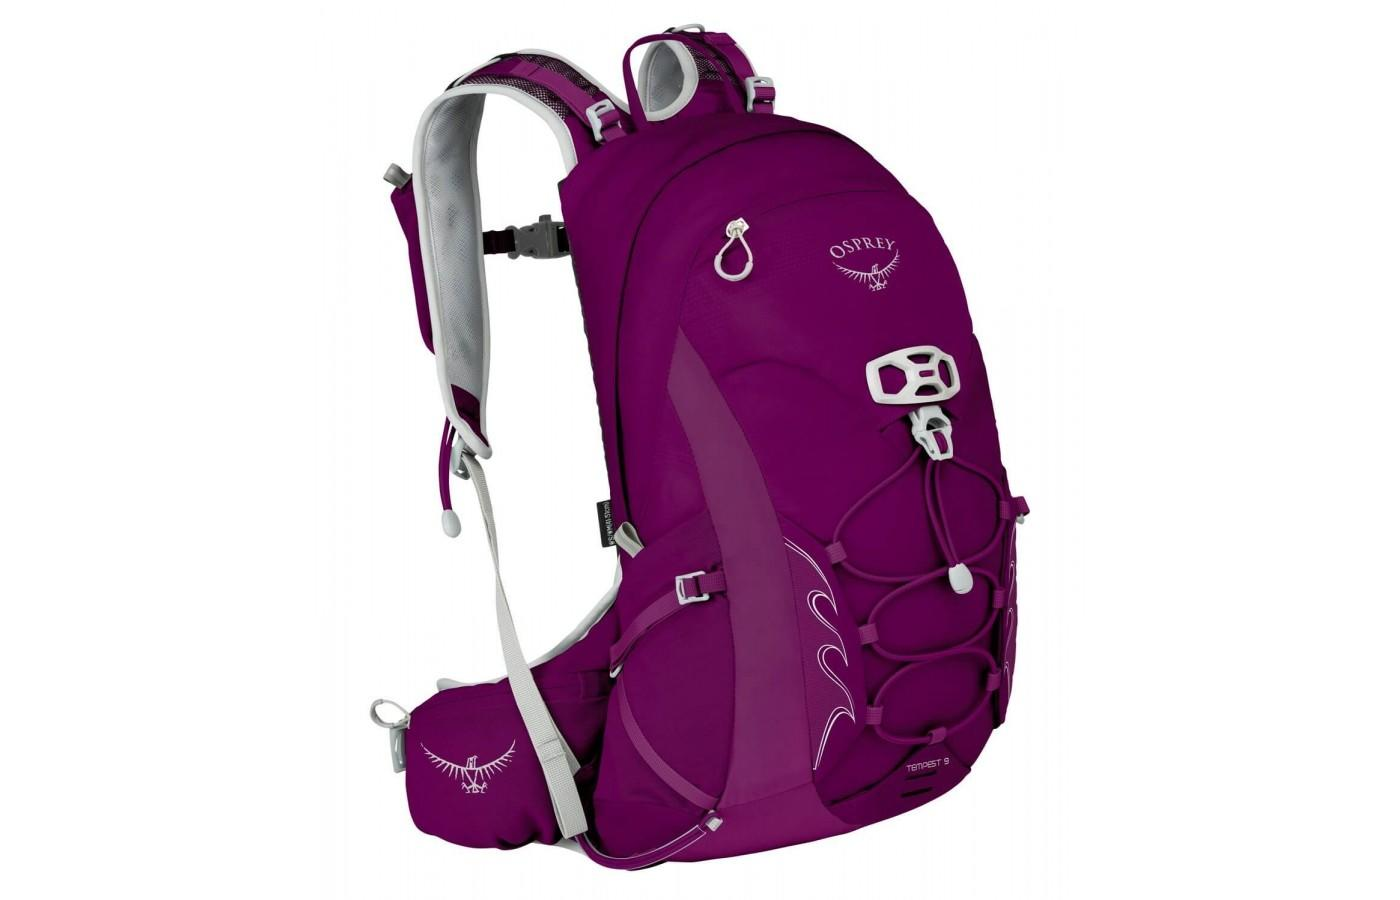 The Osprey Tempest 9 is a lightweight, versatile day pack.